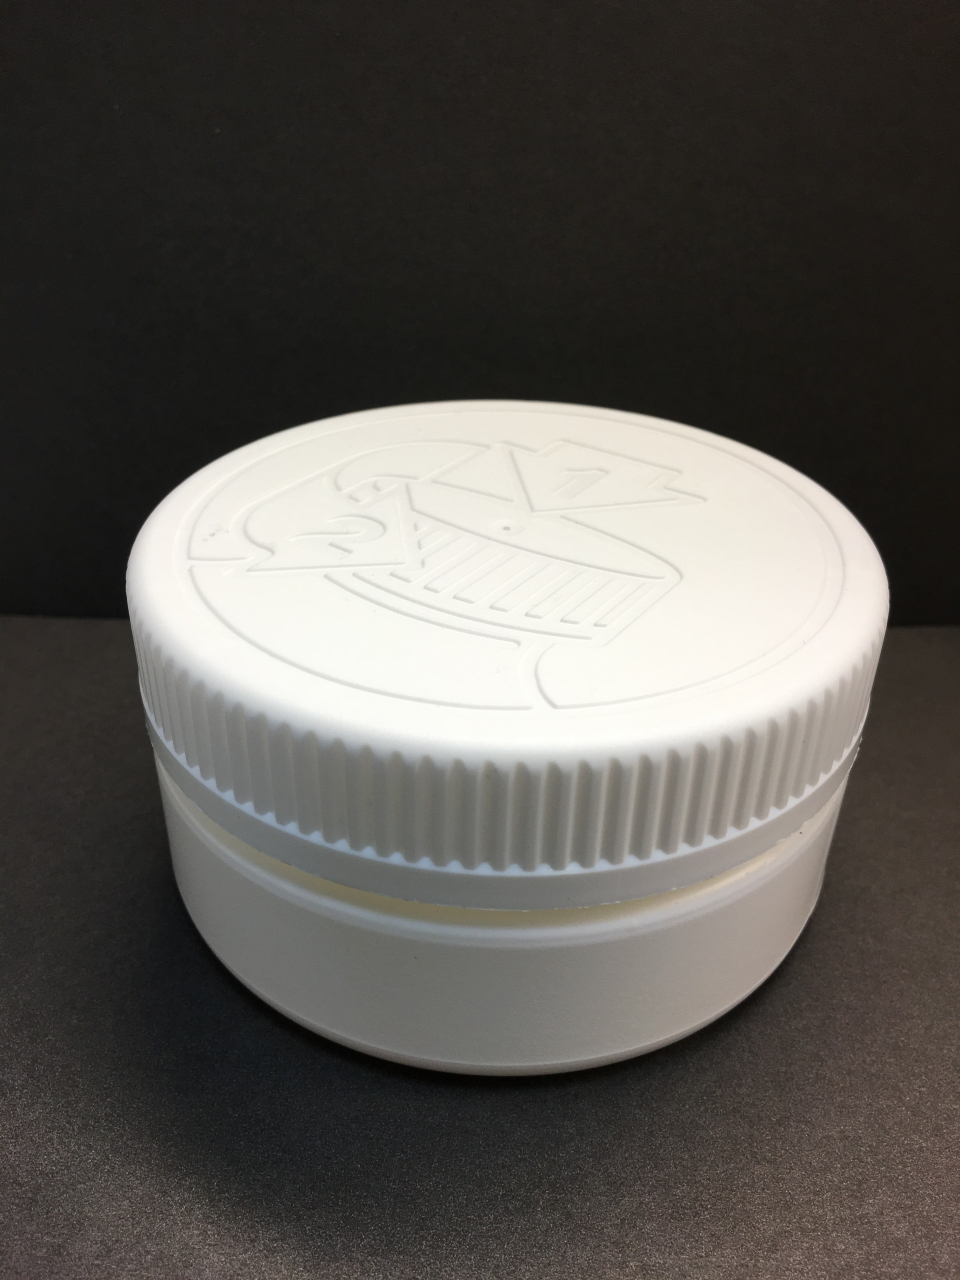 CR HDPE low profile jar